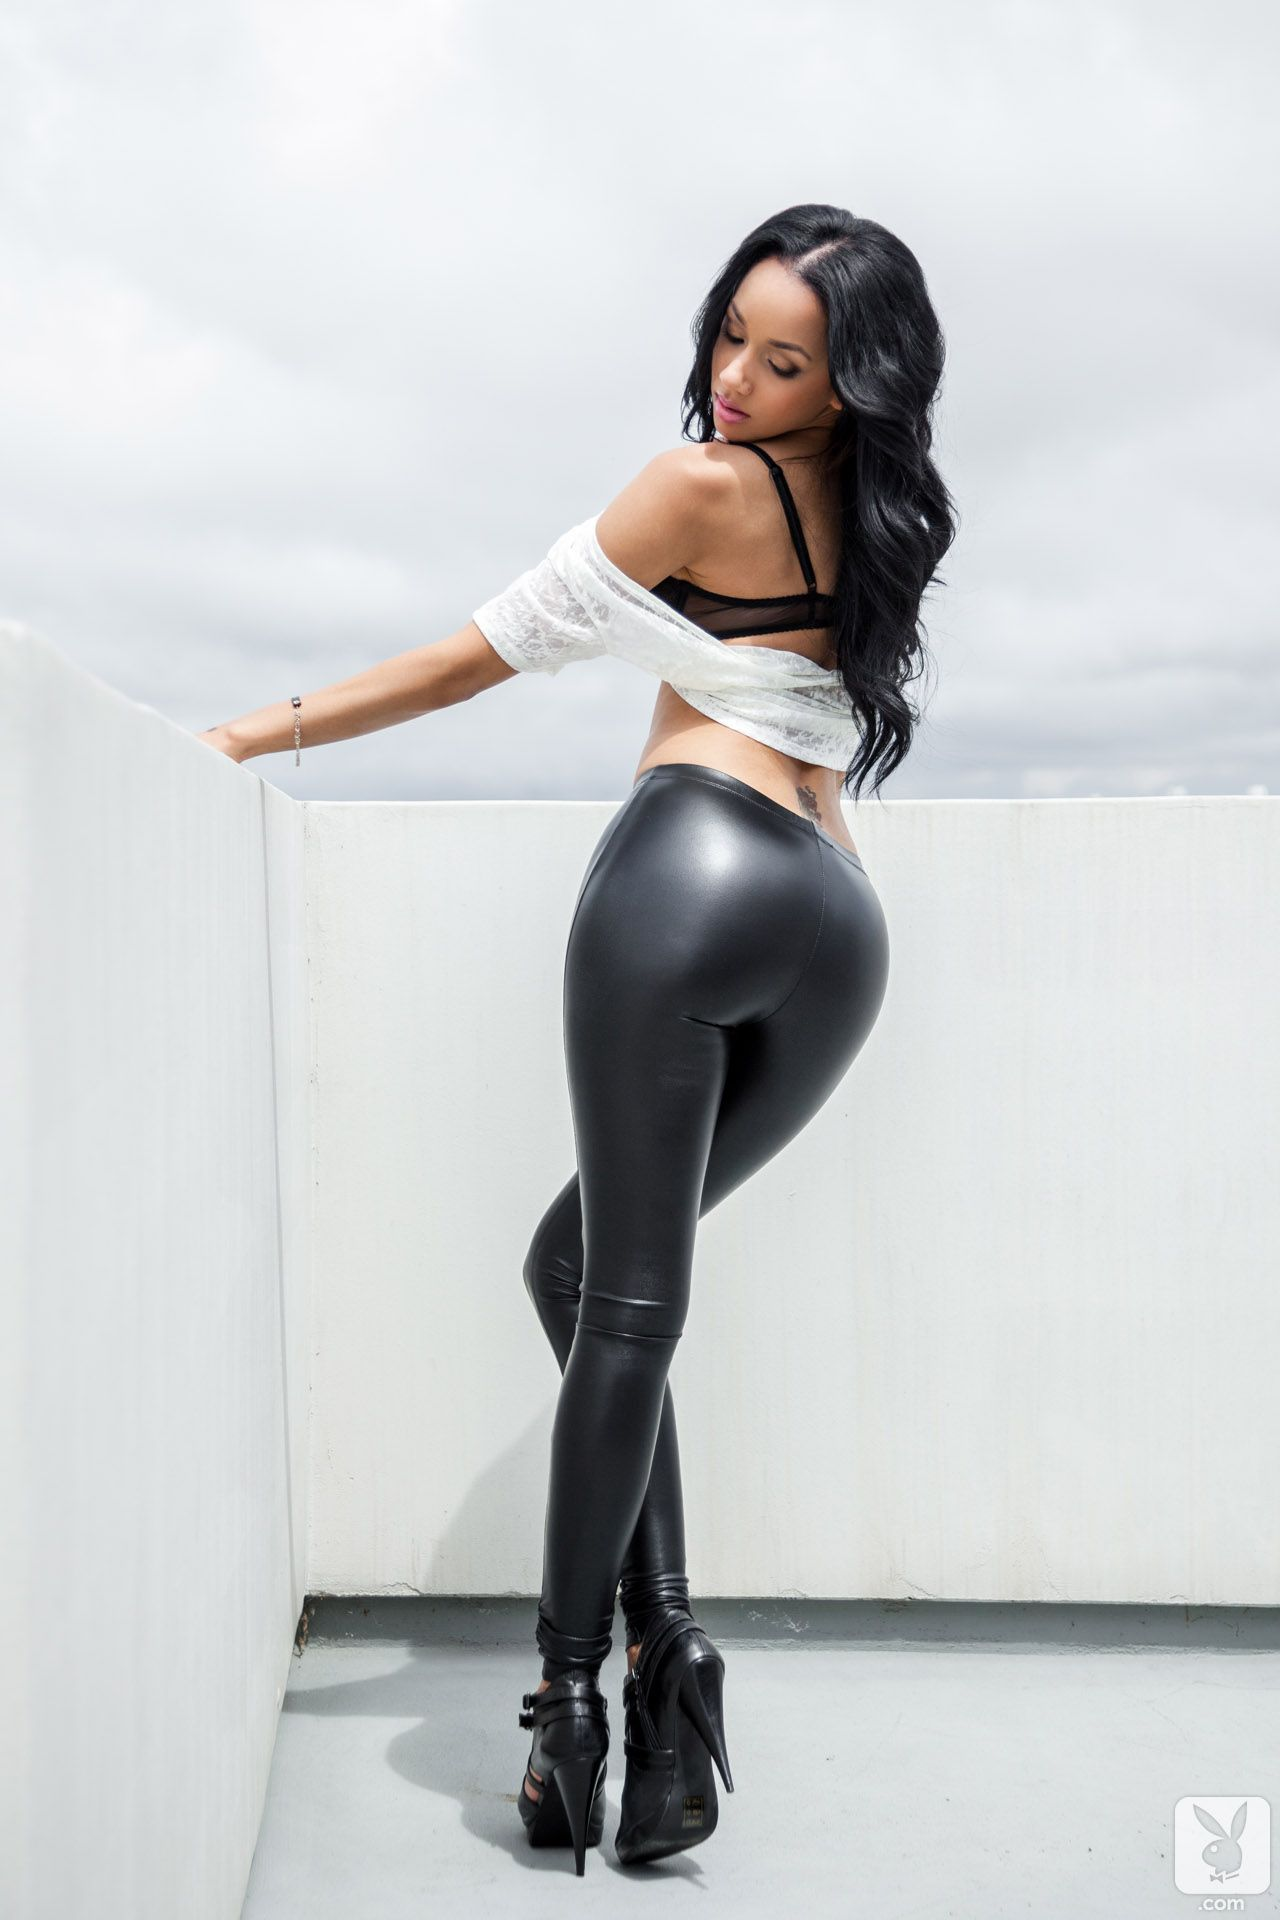 Big ass milf in black leggings